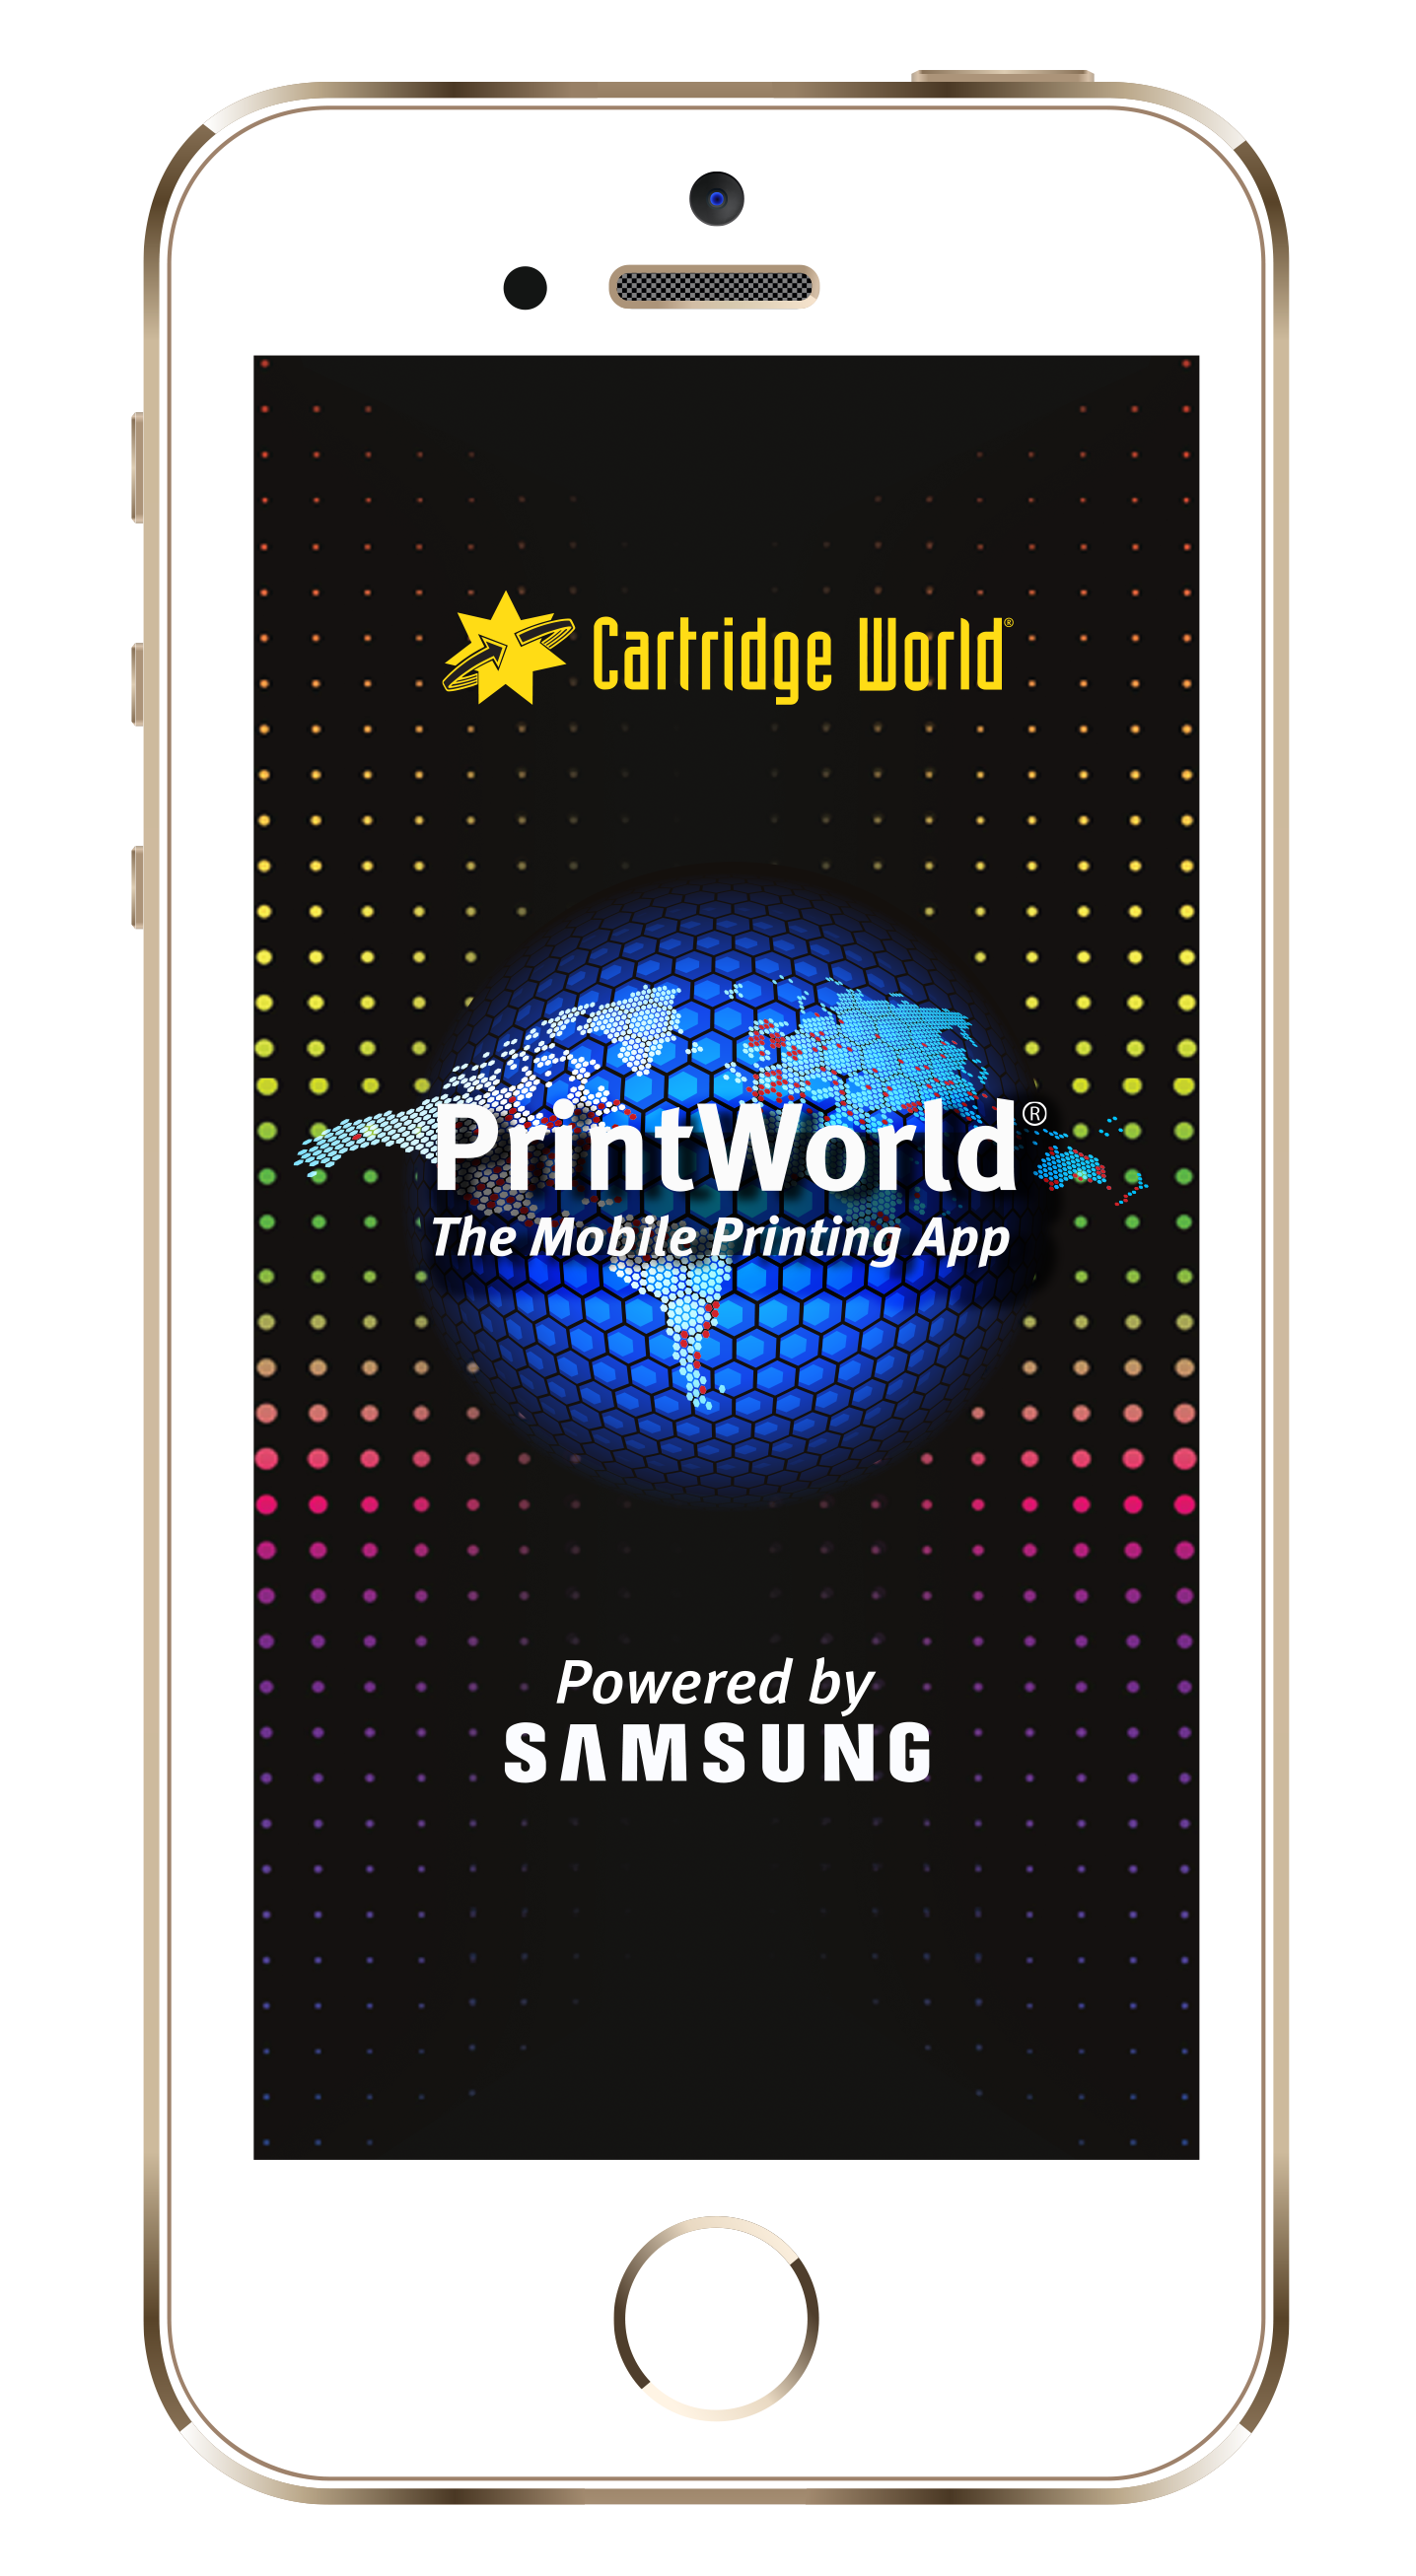 Cartridge World has 400 stores in North America and over 1,000 worldwide.